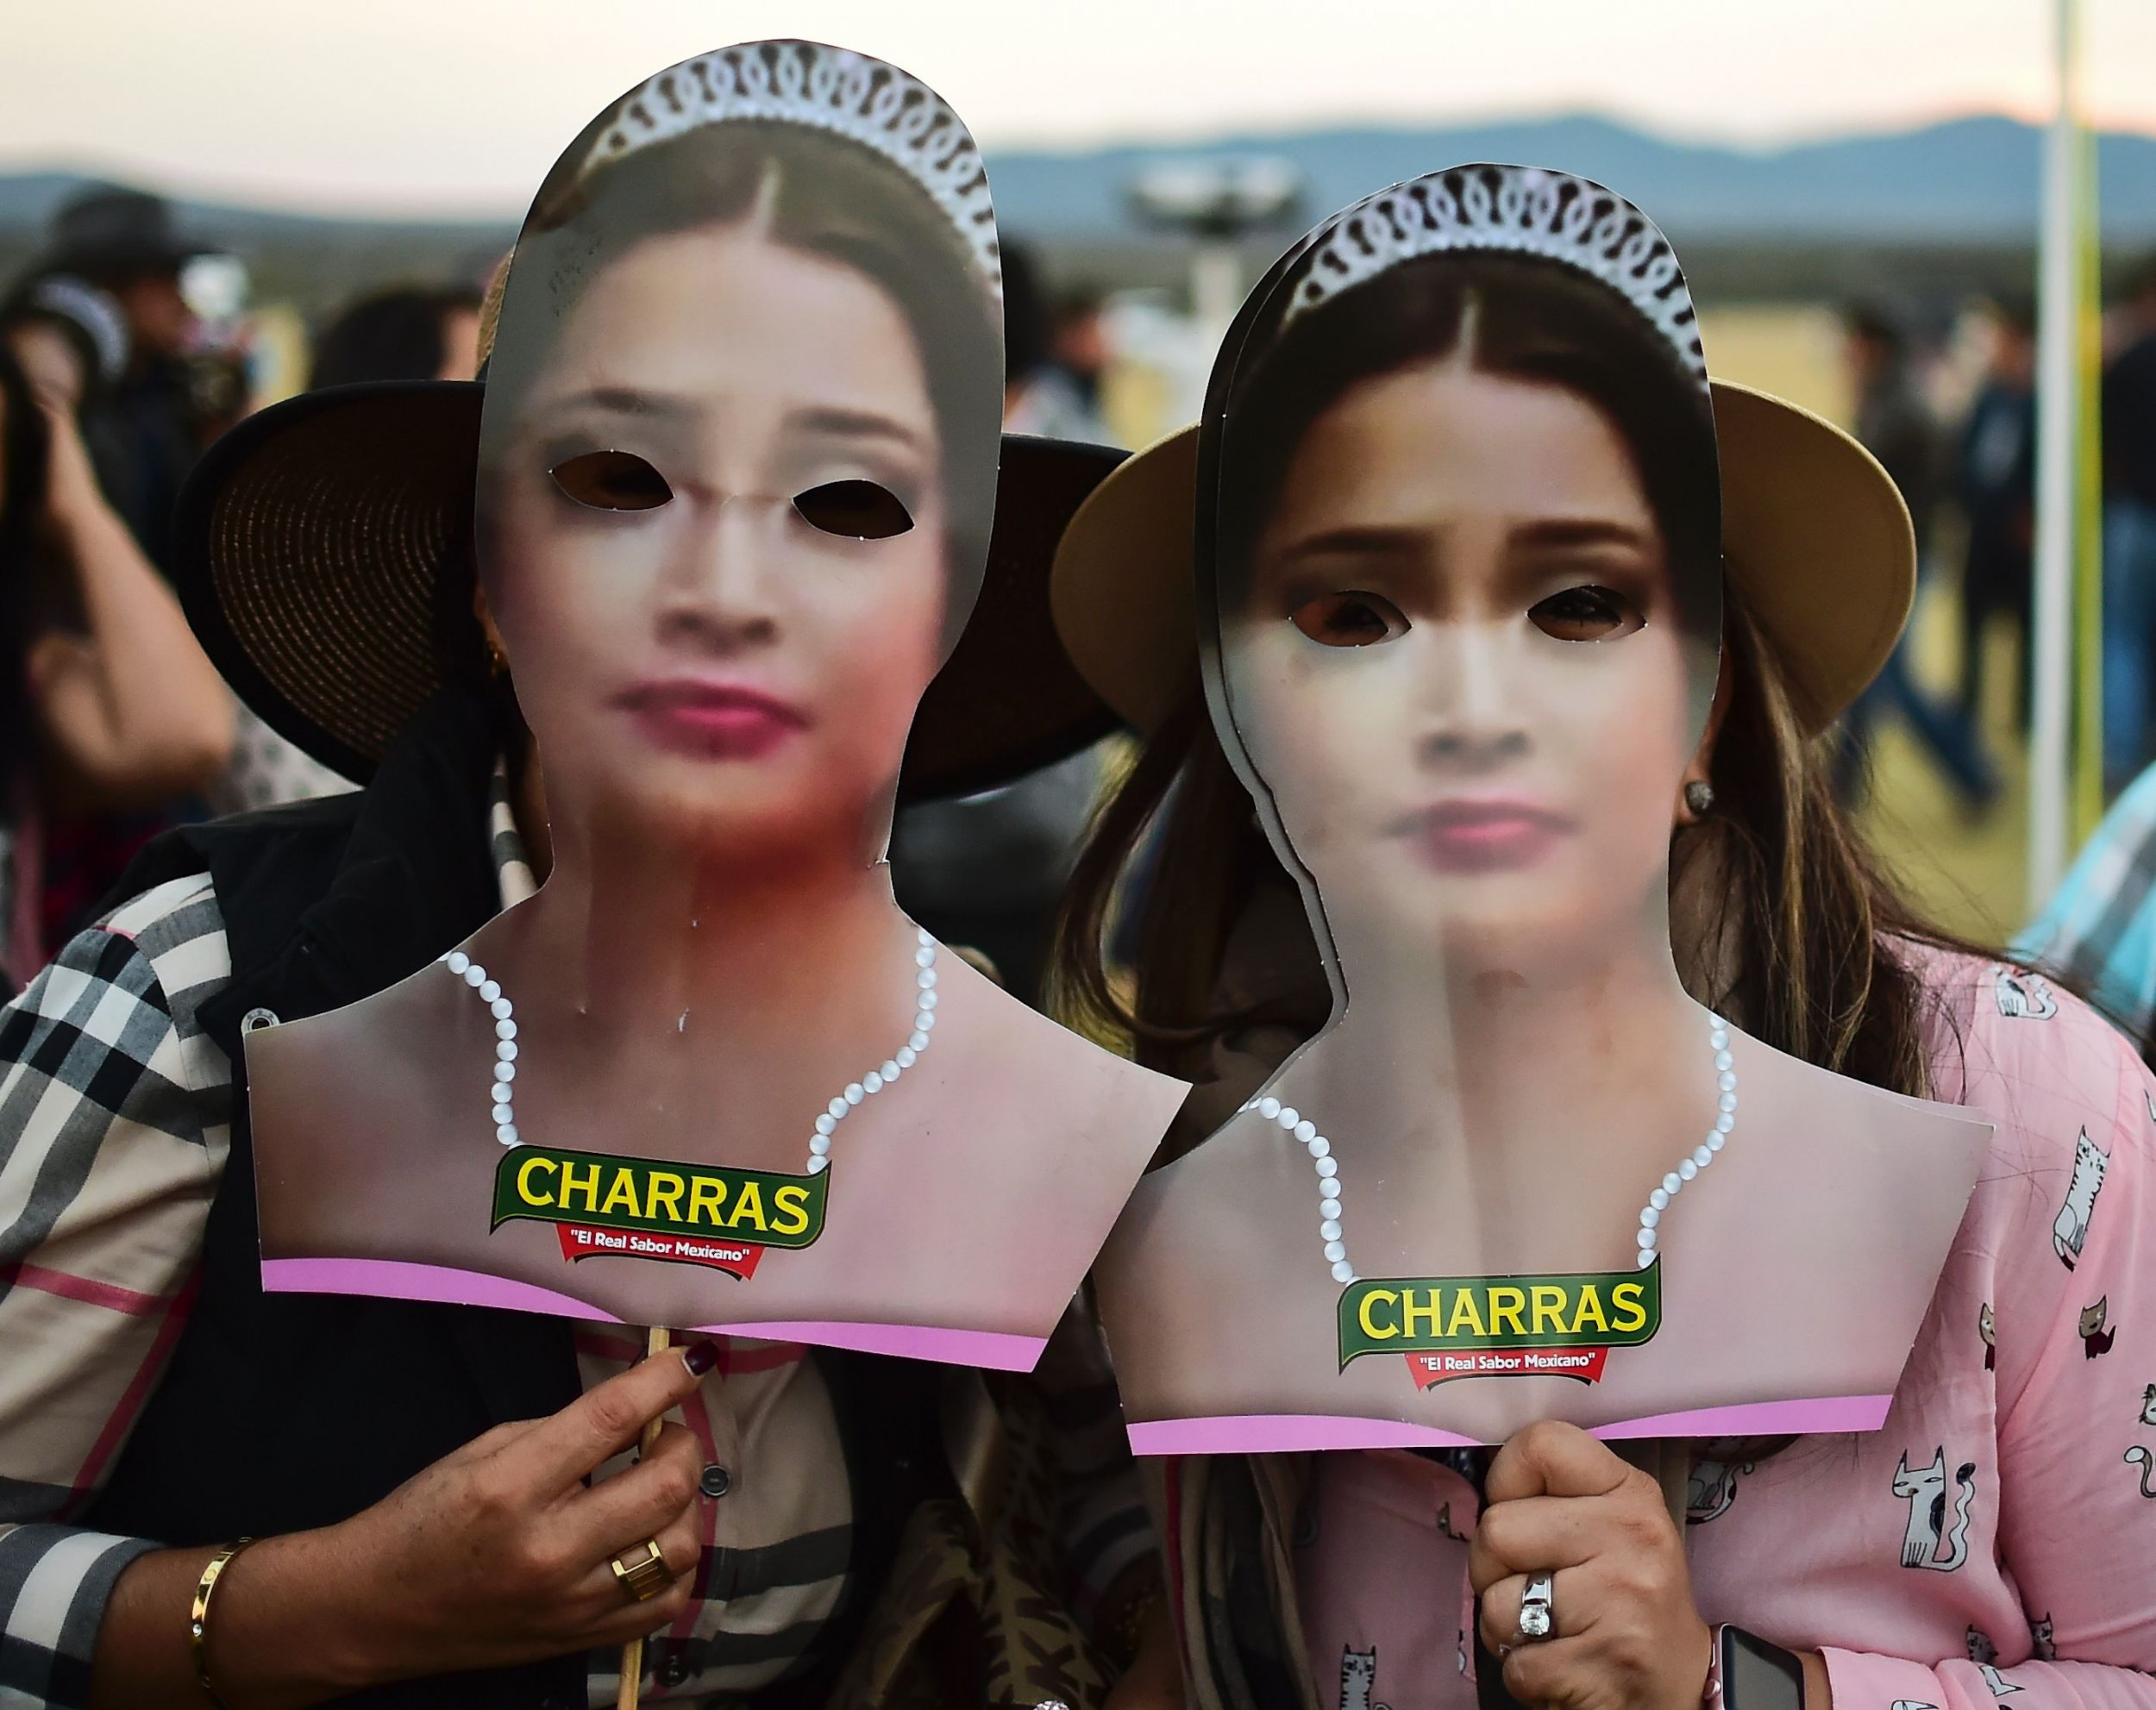 eb9d3379bee Rubi Ibarra Mexico Birthday Two women use masks depicting Mexican teenager  Rubi Ibarra during her birthday party ...